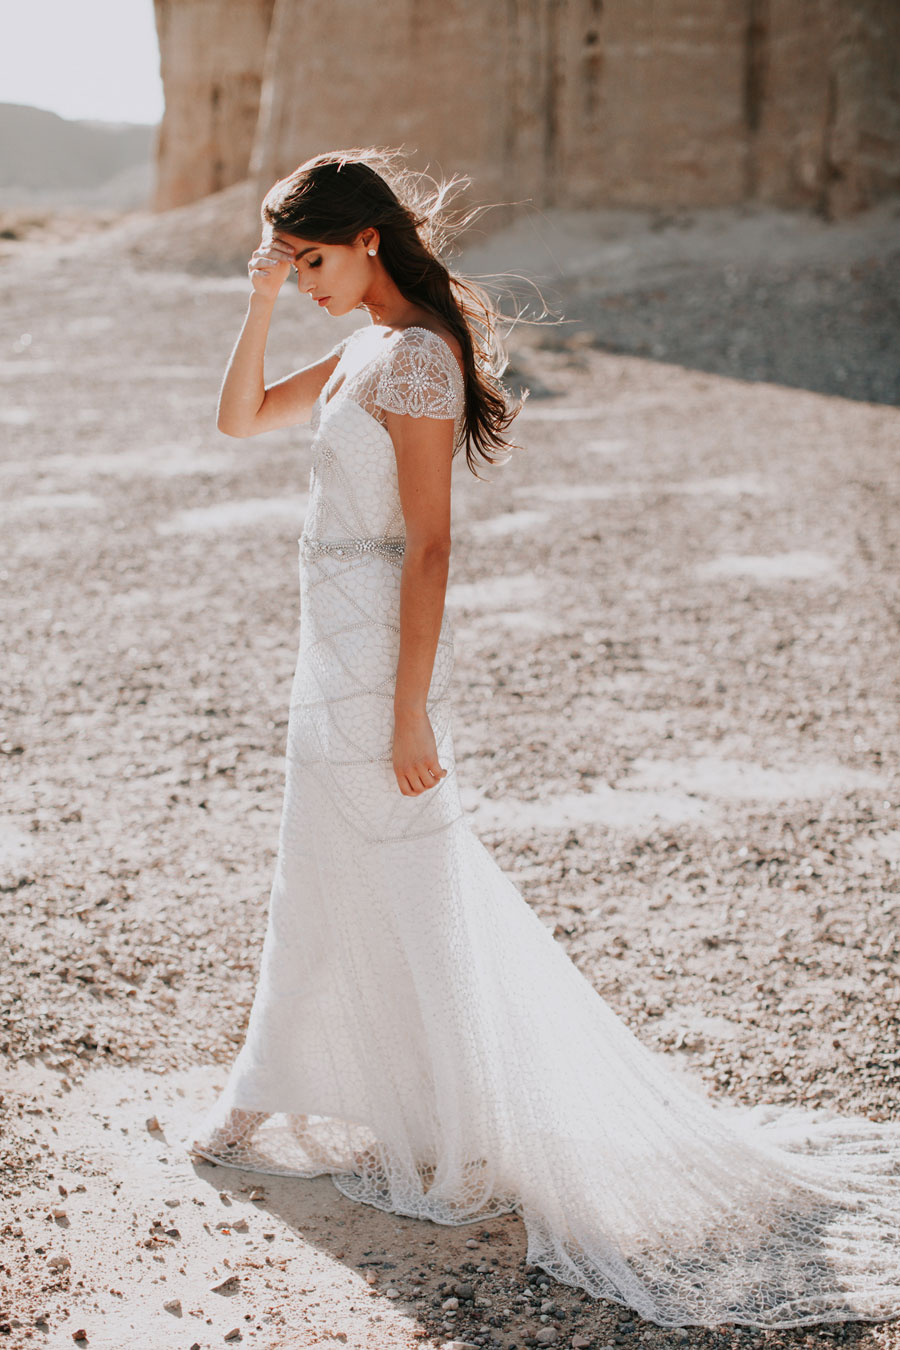 beautiful anna campbell wedding dresses wild at heart amazing wedding dresses P S did you see Anna Campbell s own wedding We blogged it right here and she wore one of her own amazing bridal creations